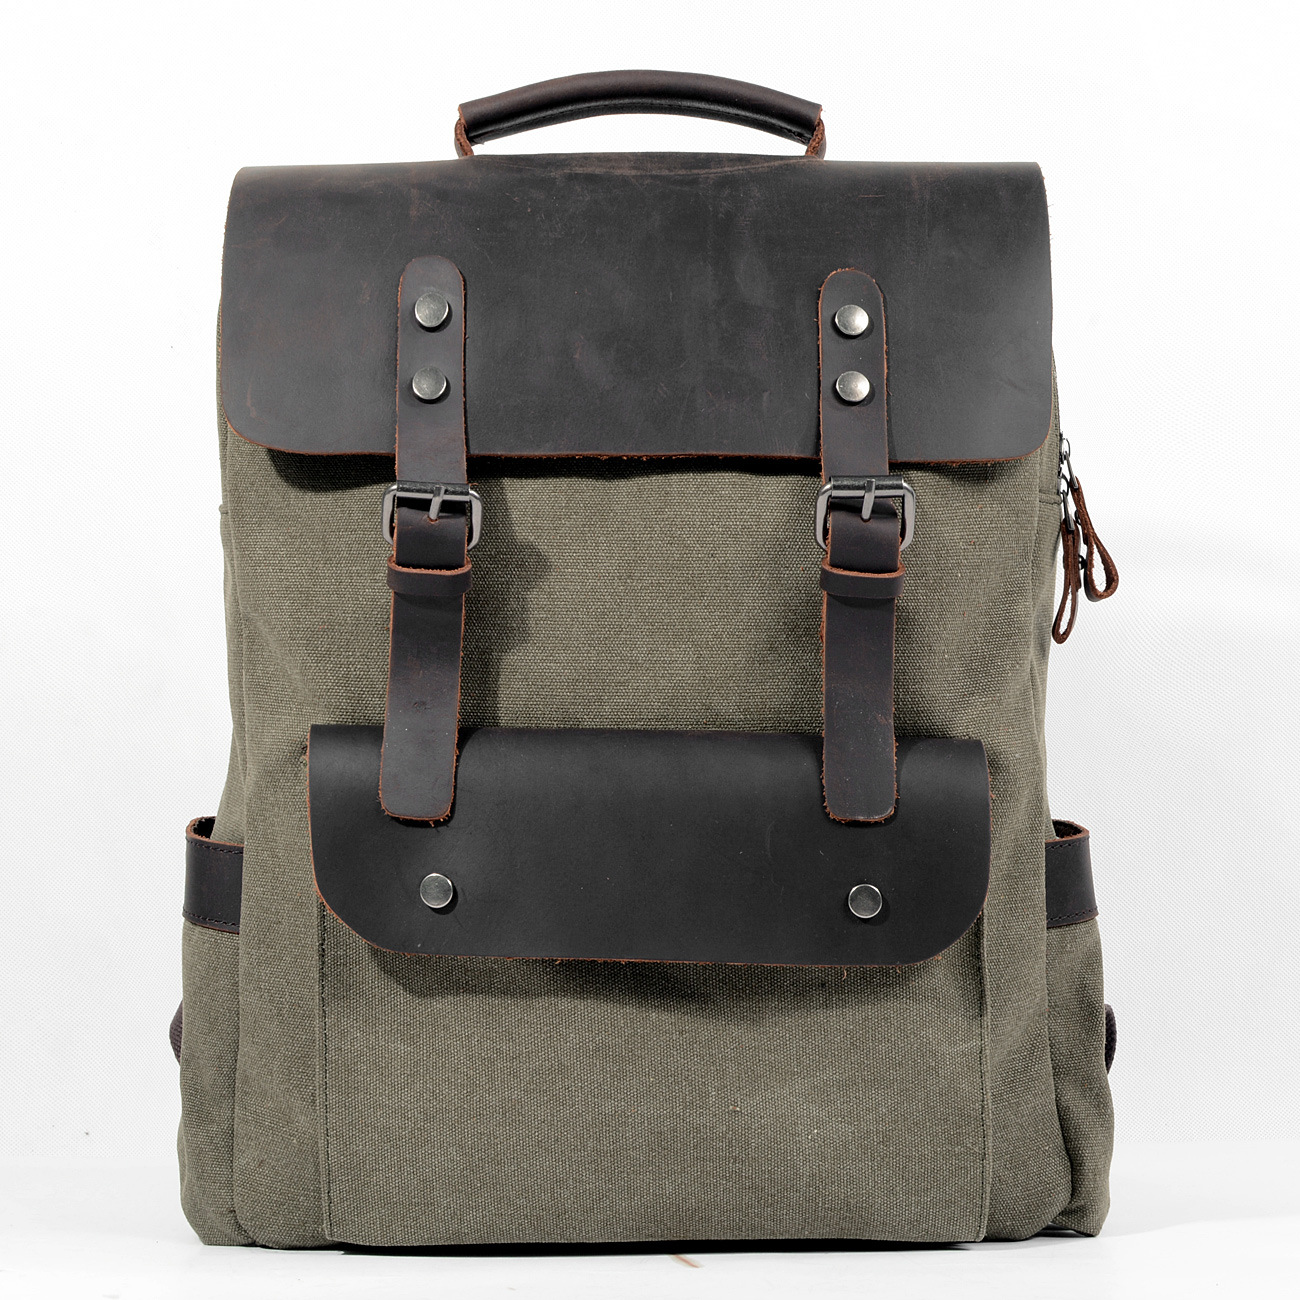 High Quality [Canvas + Real Cowhide Leather] Luxury Women Men Backpack Travel School Bags Large Capacity Laptop Daypack BookbagHigh Quality [Canvas + Real Cowhide Leather] Luxury Women Men Backpack Travel School Bags Large Capacity Laptop Daypack Bookbag